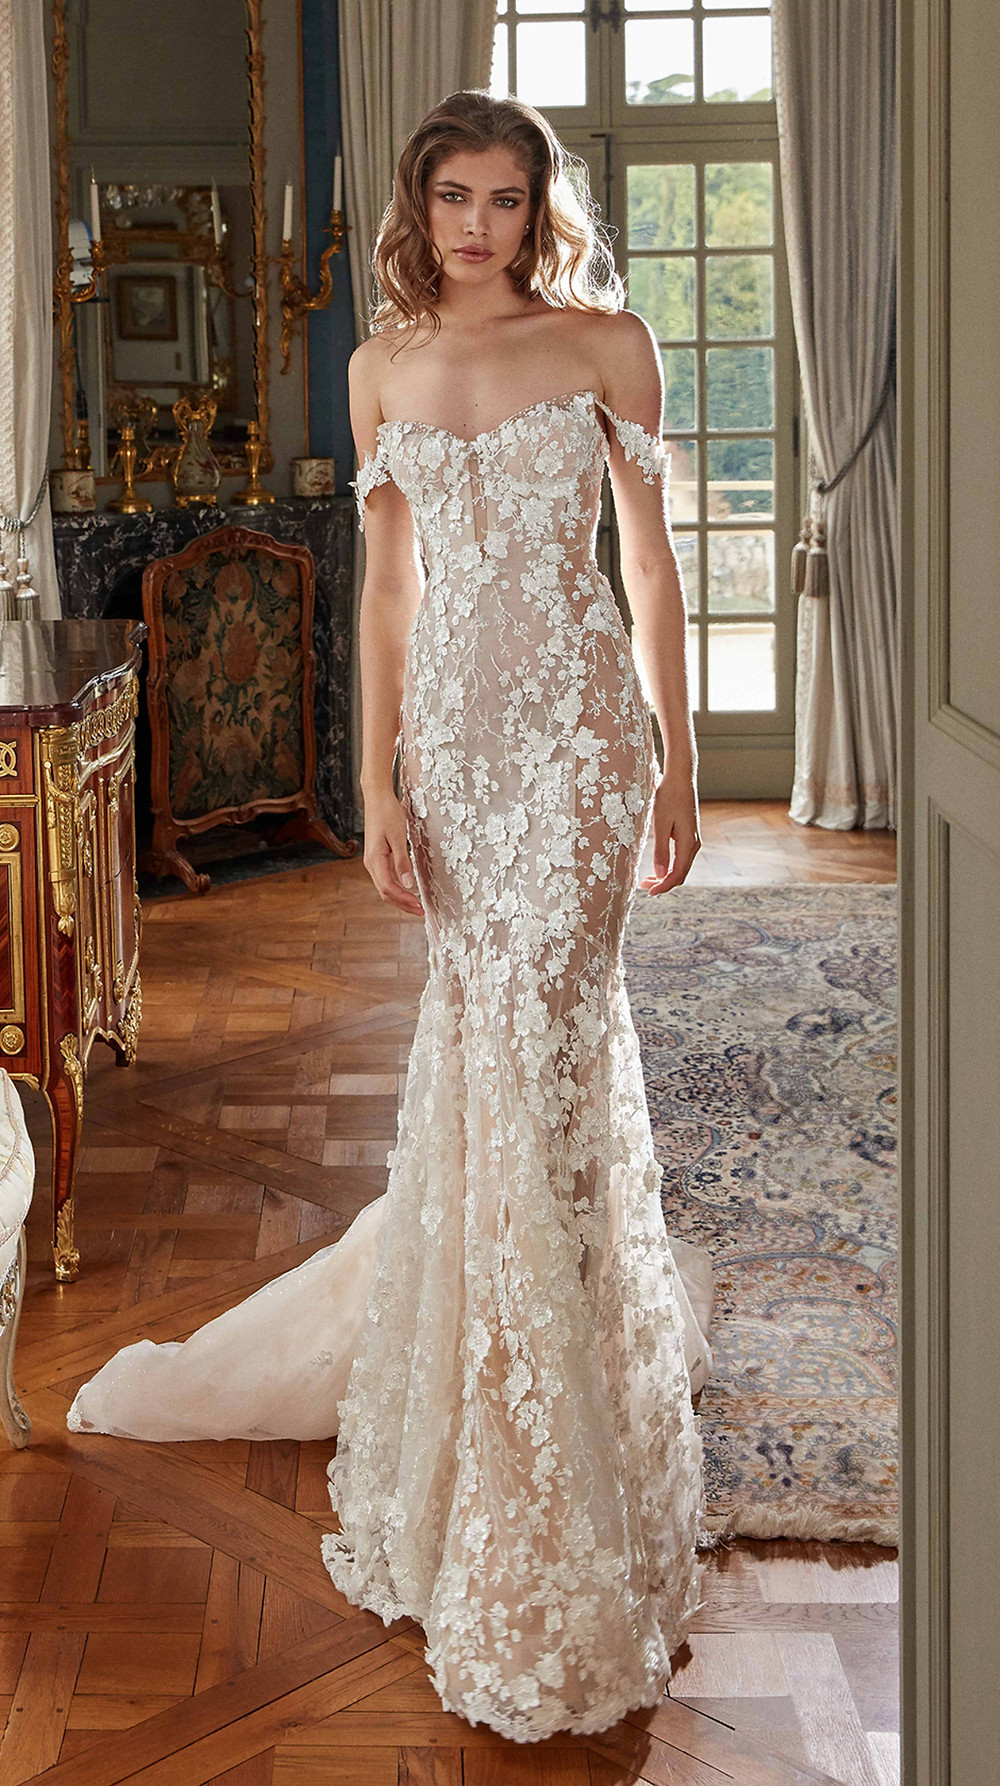 A fitted, semi-sheer mermaid wedding gown with light 3D embroidered flowers over silk tulle combines with elegant off-the-shoulder straps, a low illusion back, and sheer inserts on the sides that flow into a dramatic caviar tulle train